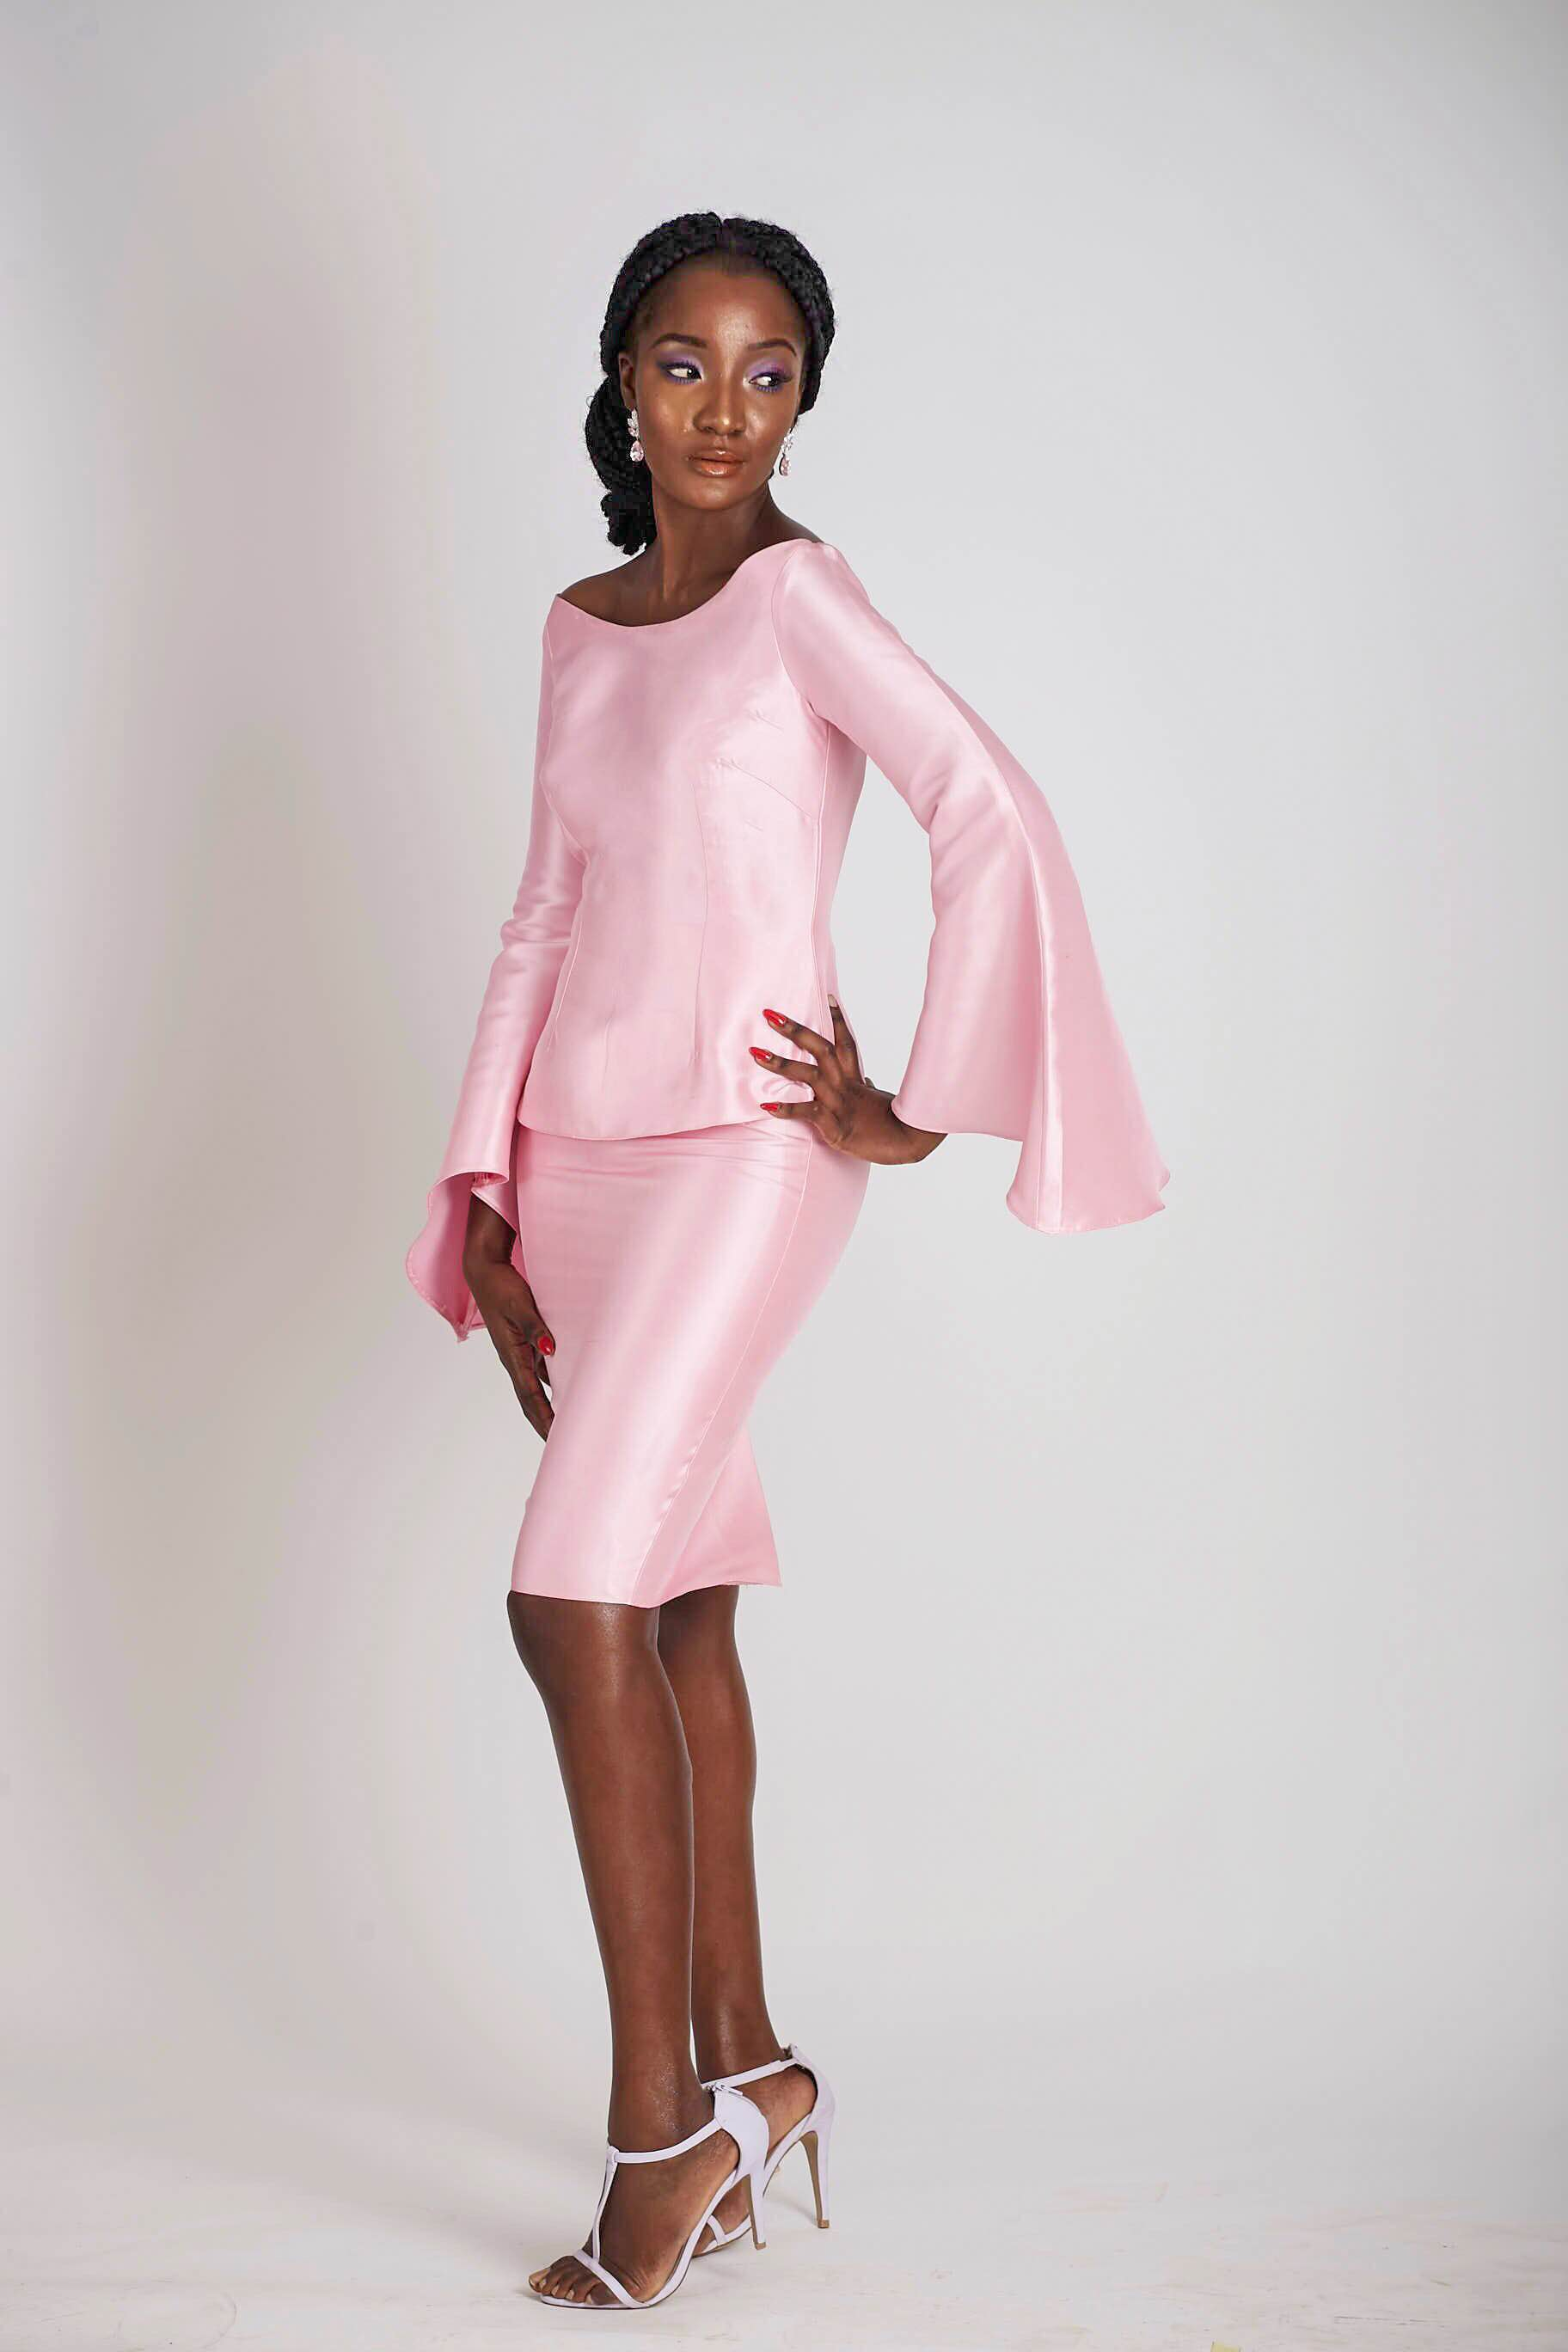 Imad Eduso - BN Style - Collection Lookbook - BellaNaija.com 08